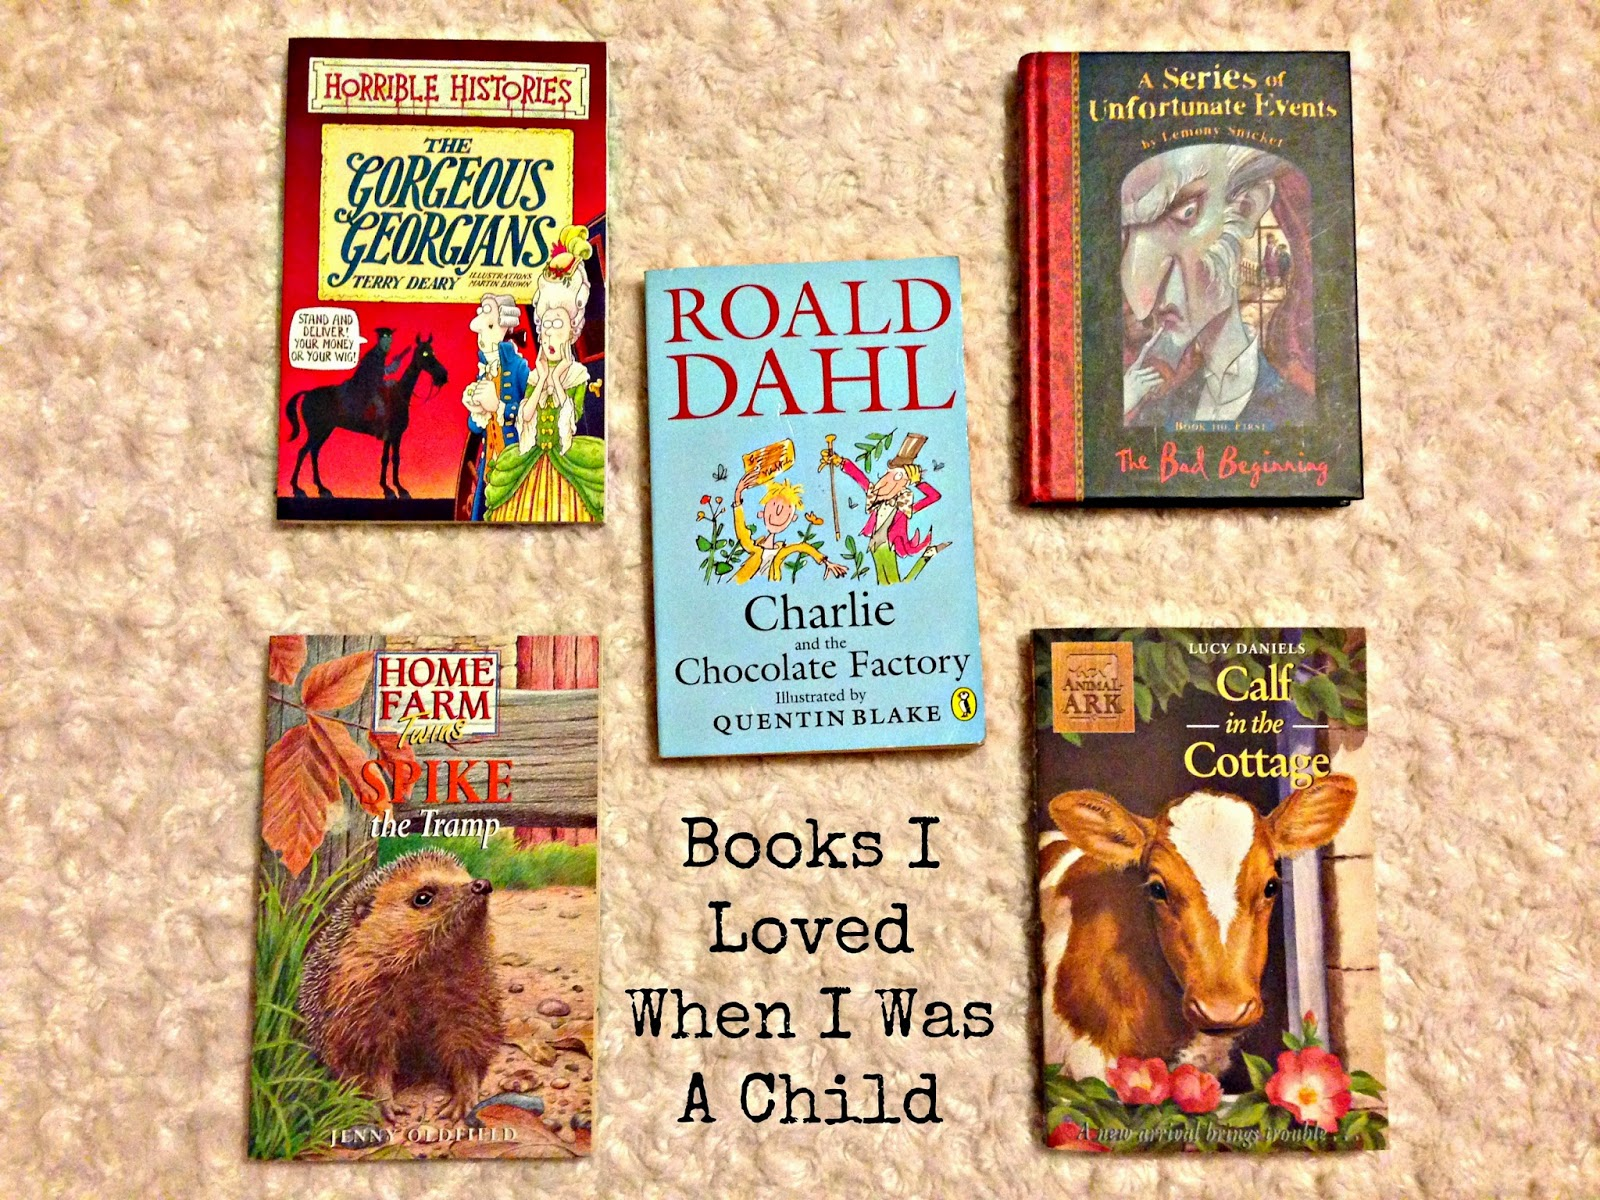 Books I Loved When I Was A Child